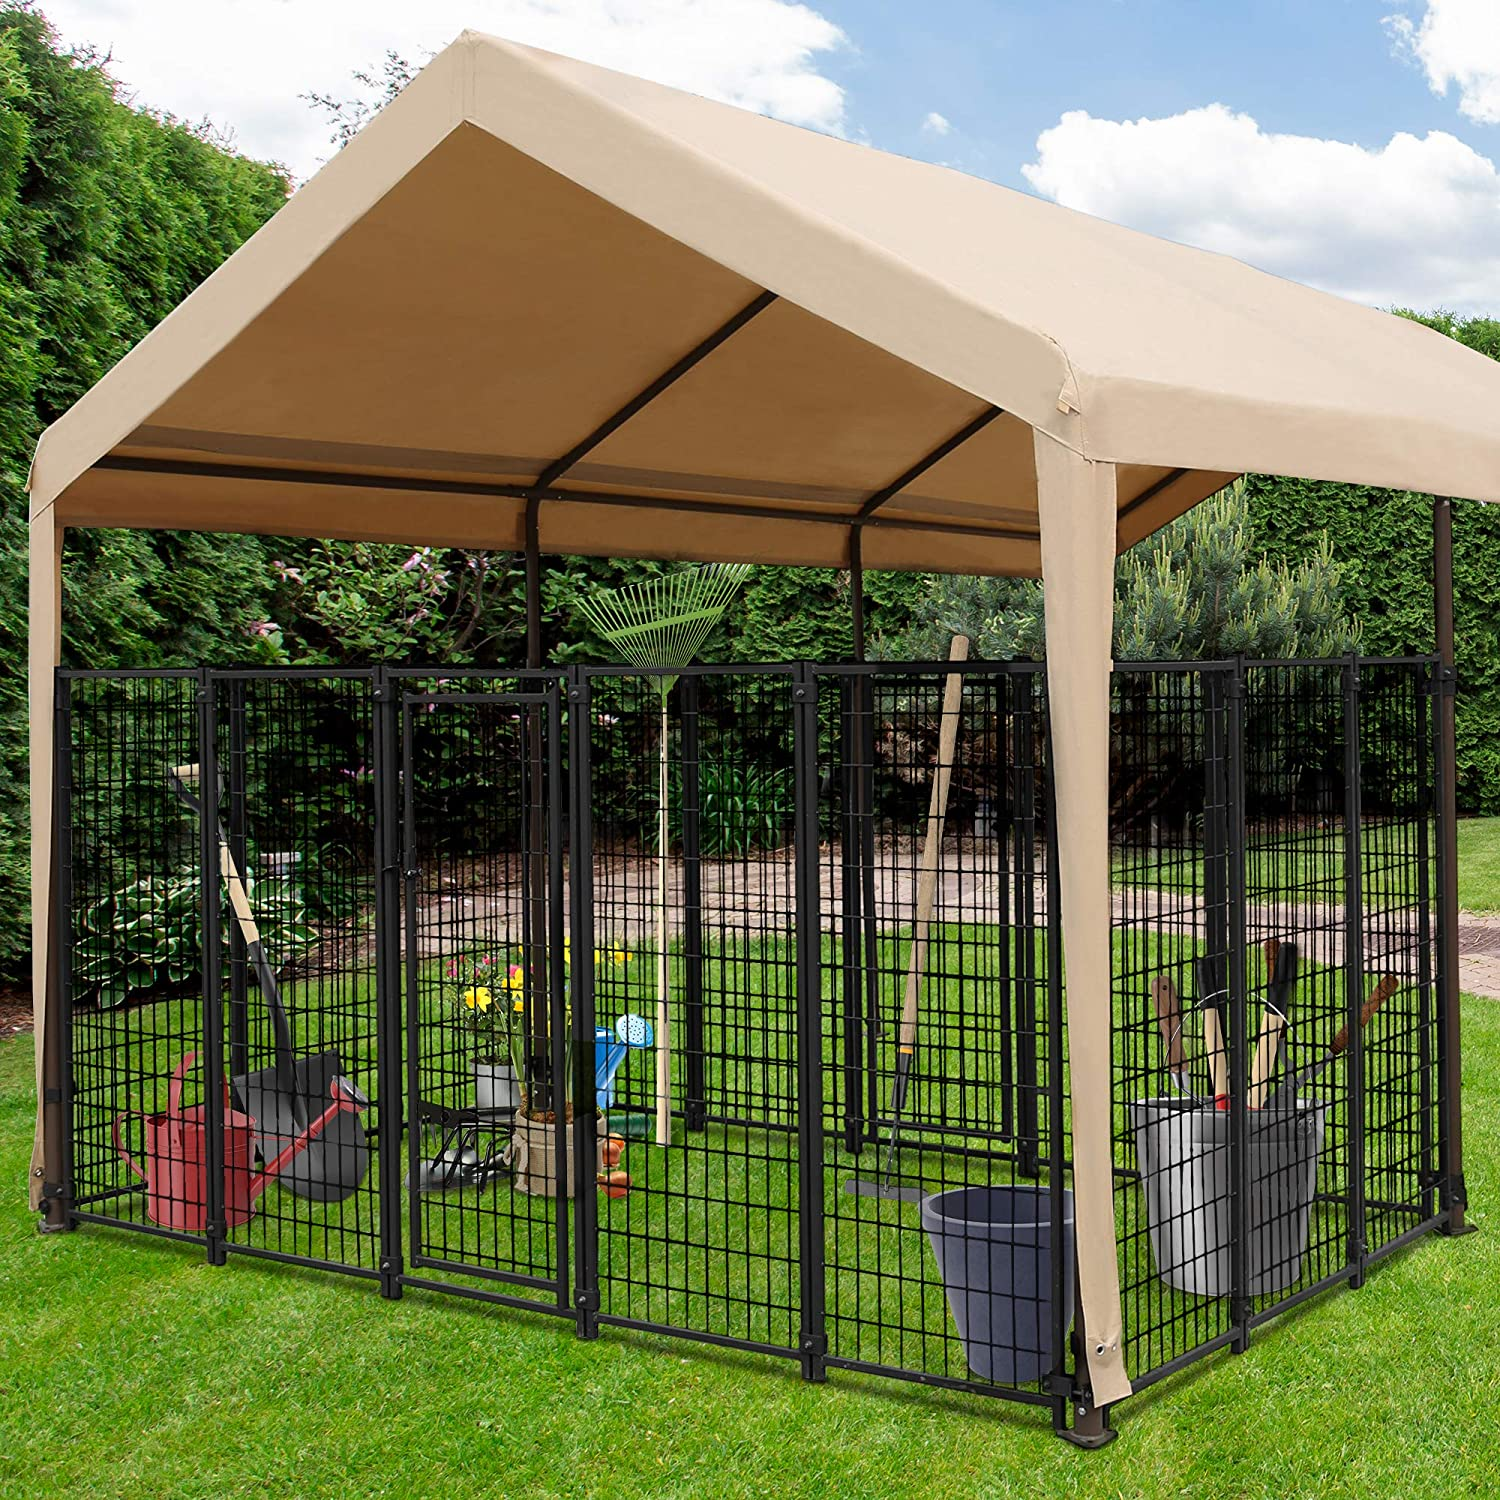 10 x 6.7 ft Heavy Duty Steel Detachable Fence for Storage or Pet Cage